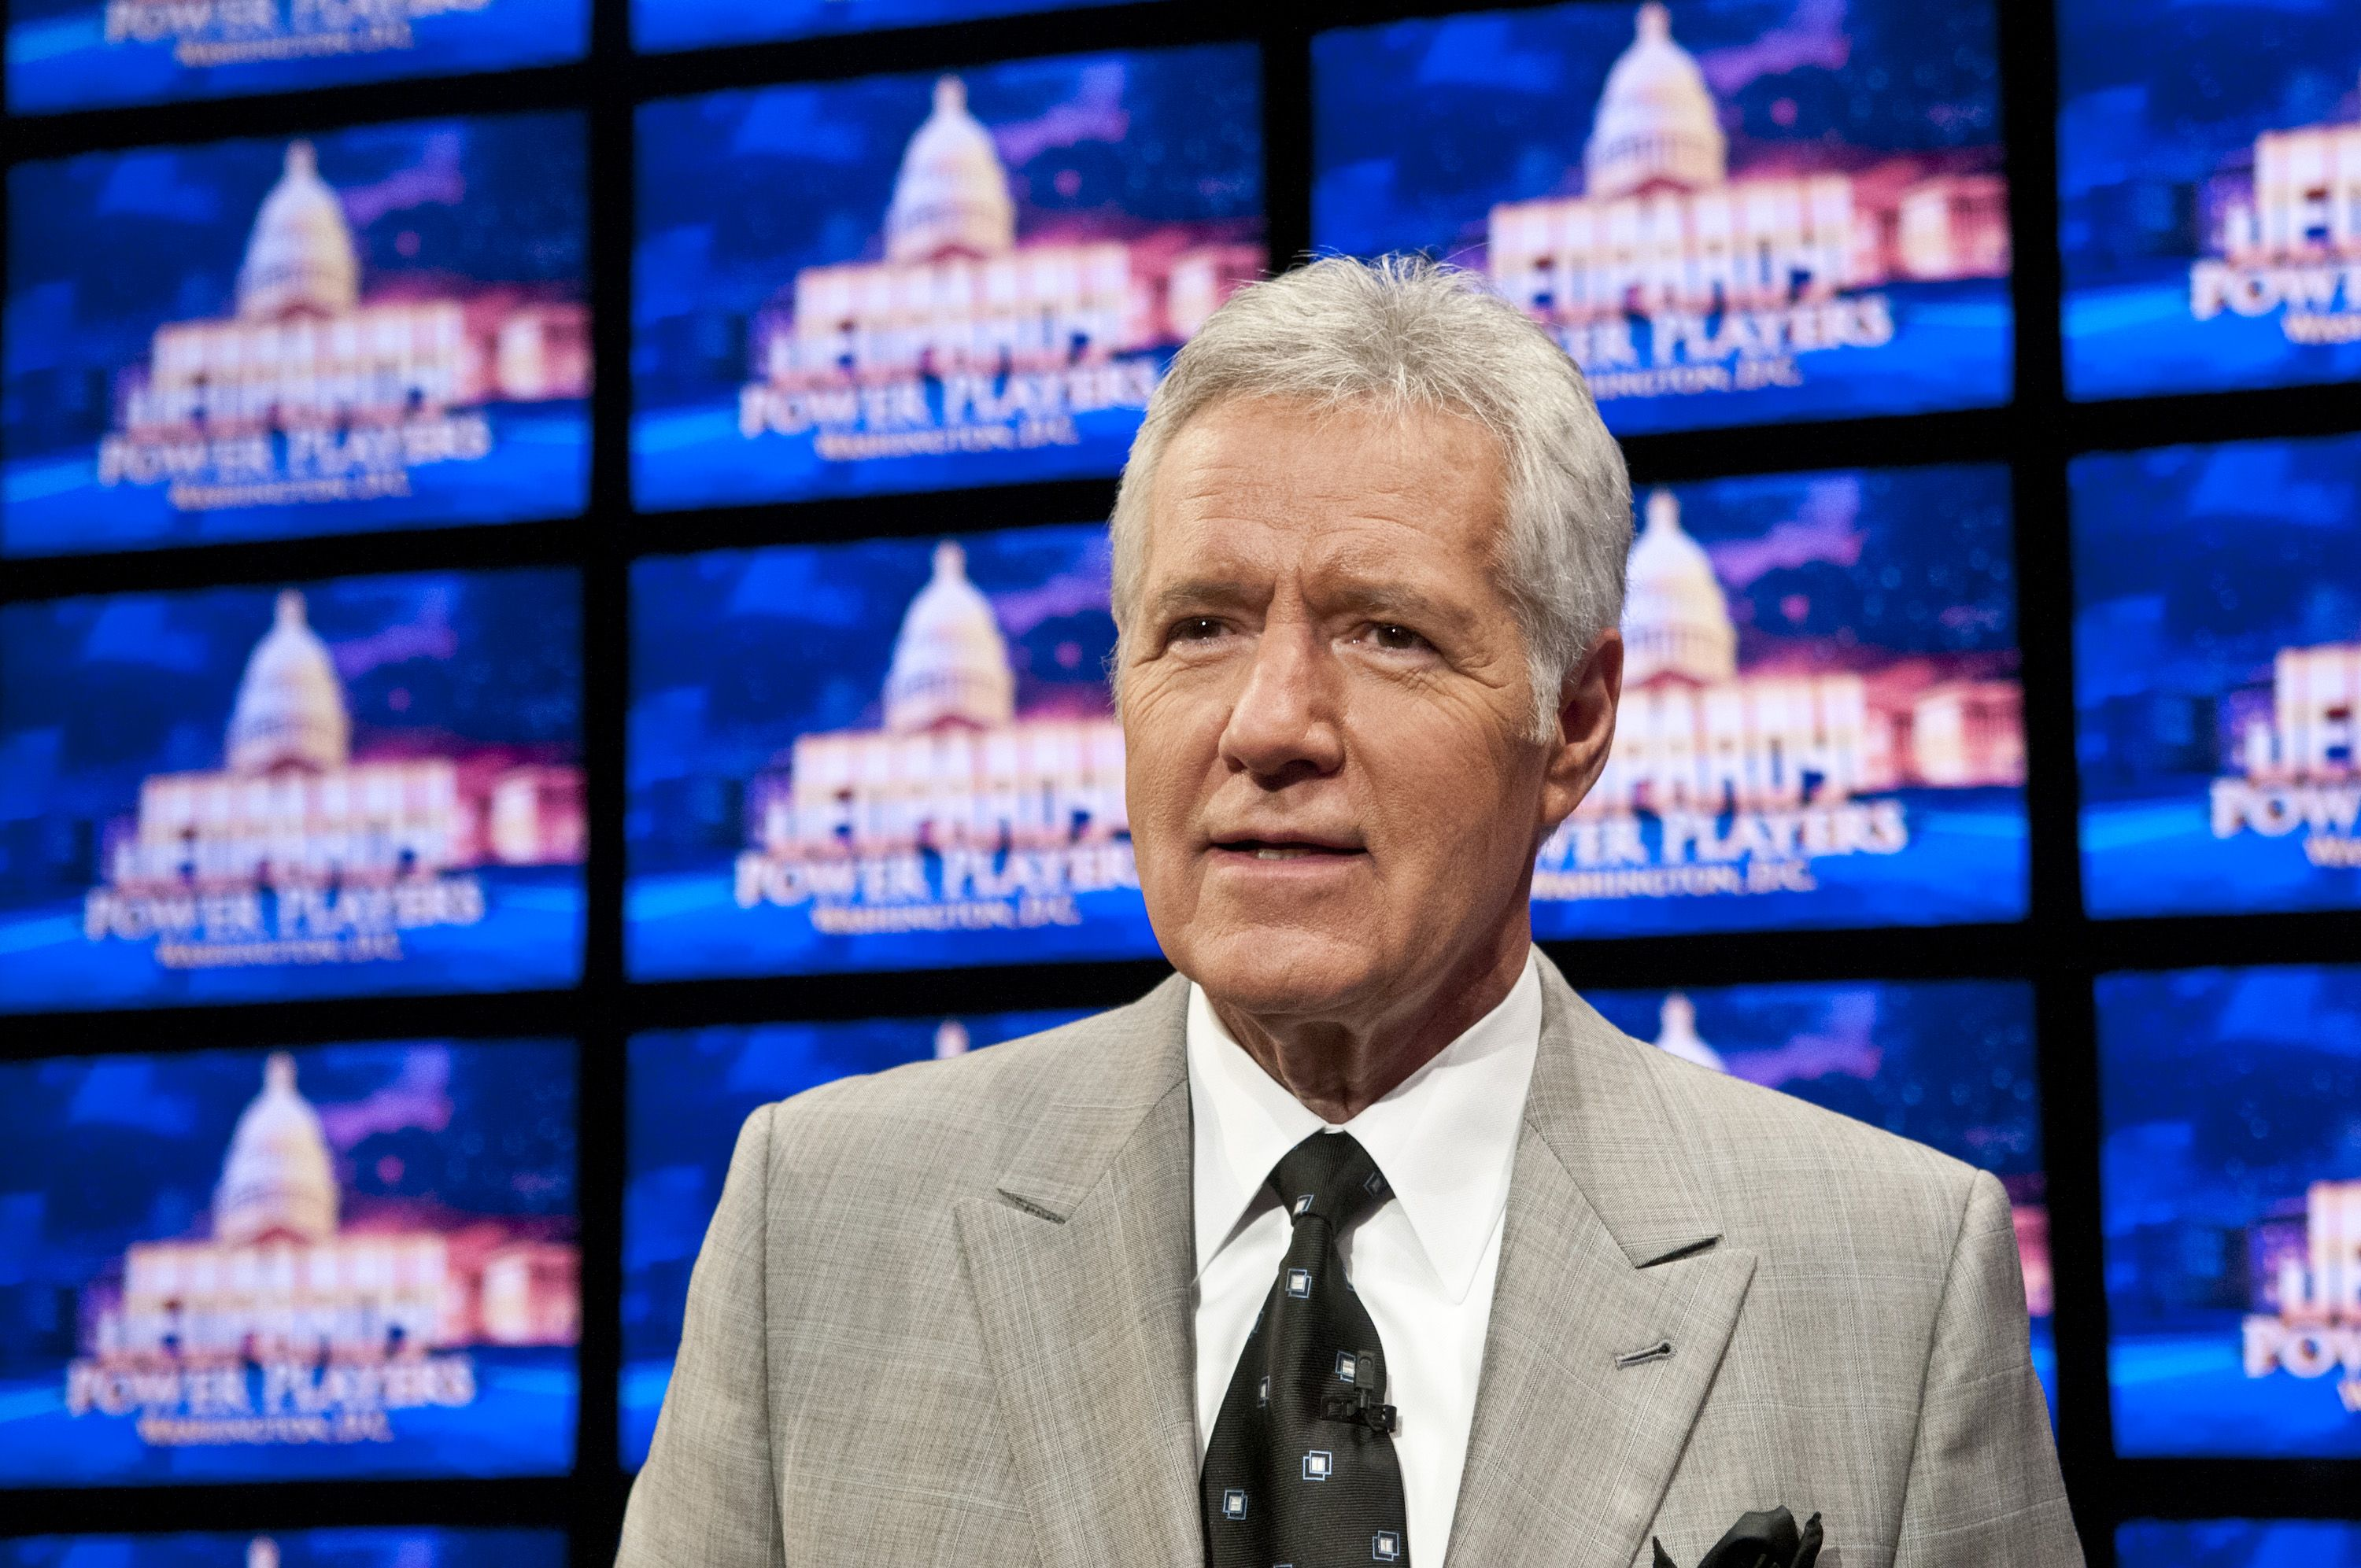 Alex Trebek Thinks a Woman Will Be Jeopardy Replacement to Be When He Retires